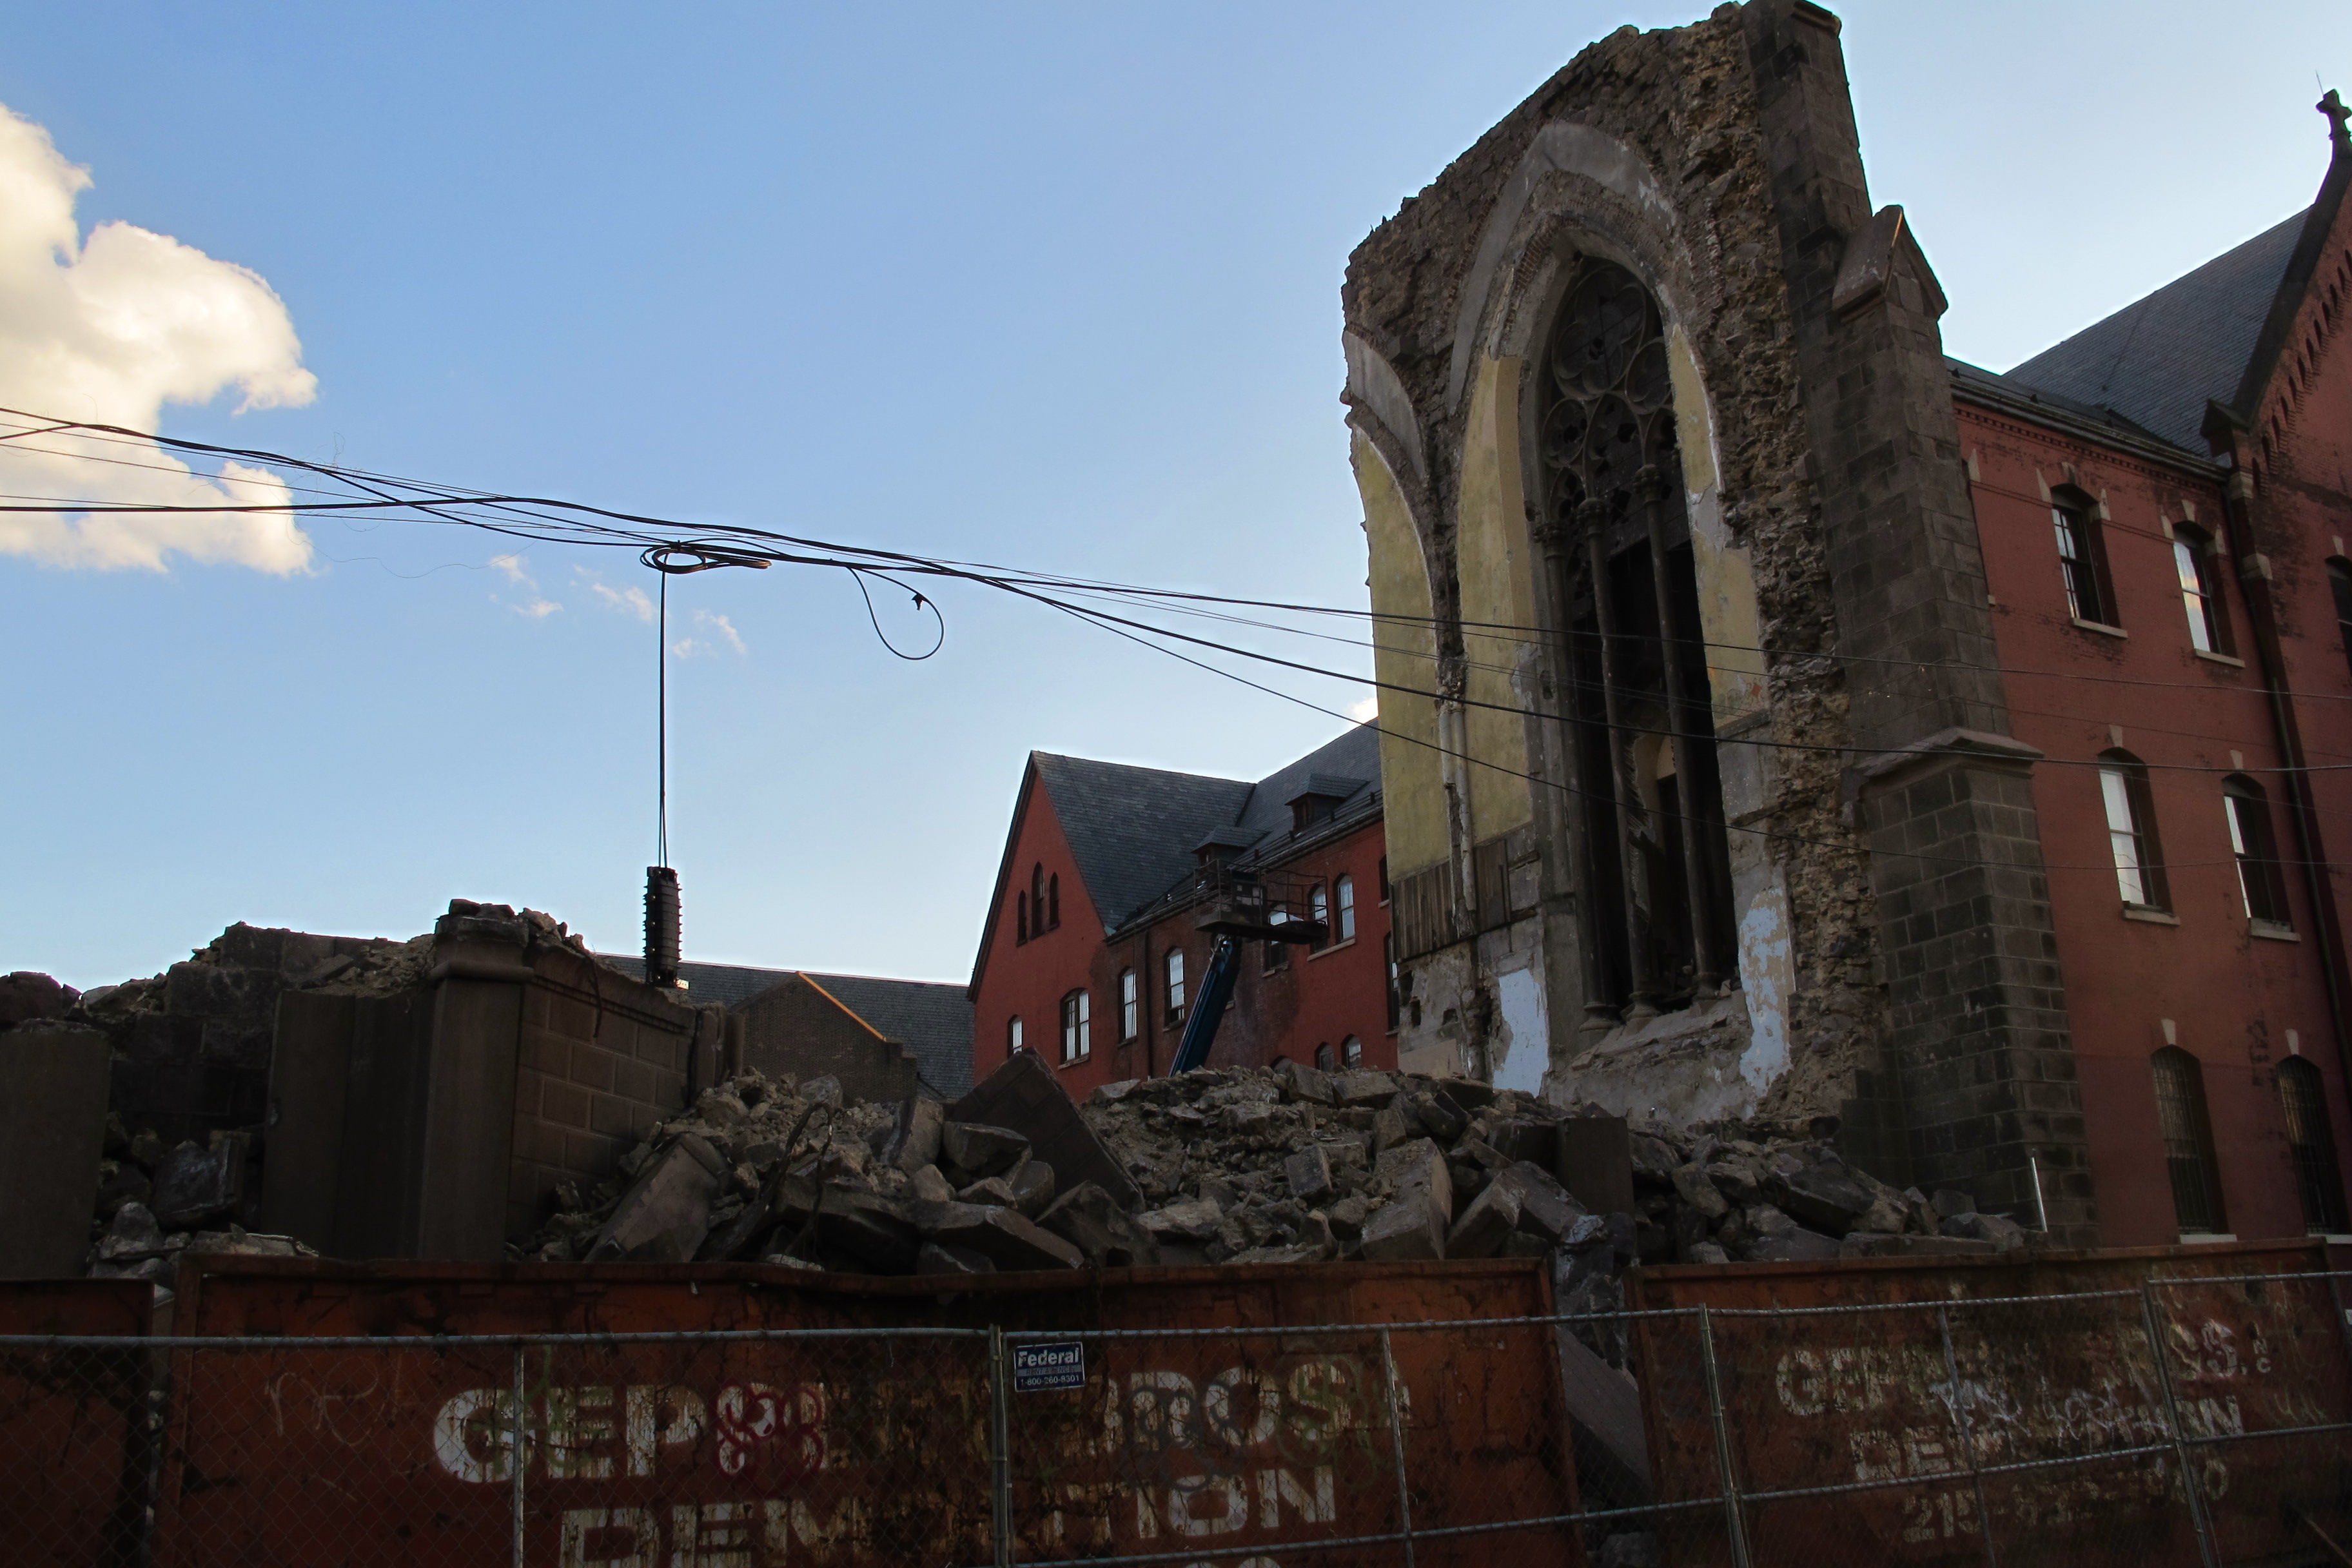 (St. Boniface Church demolition, Norris Square. April 2012.)